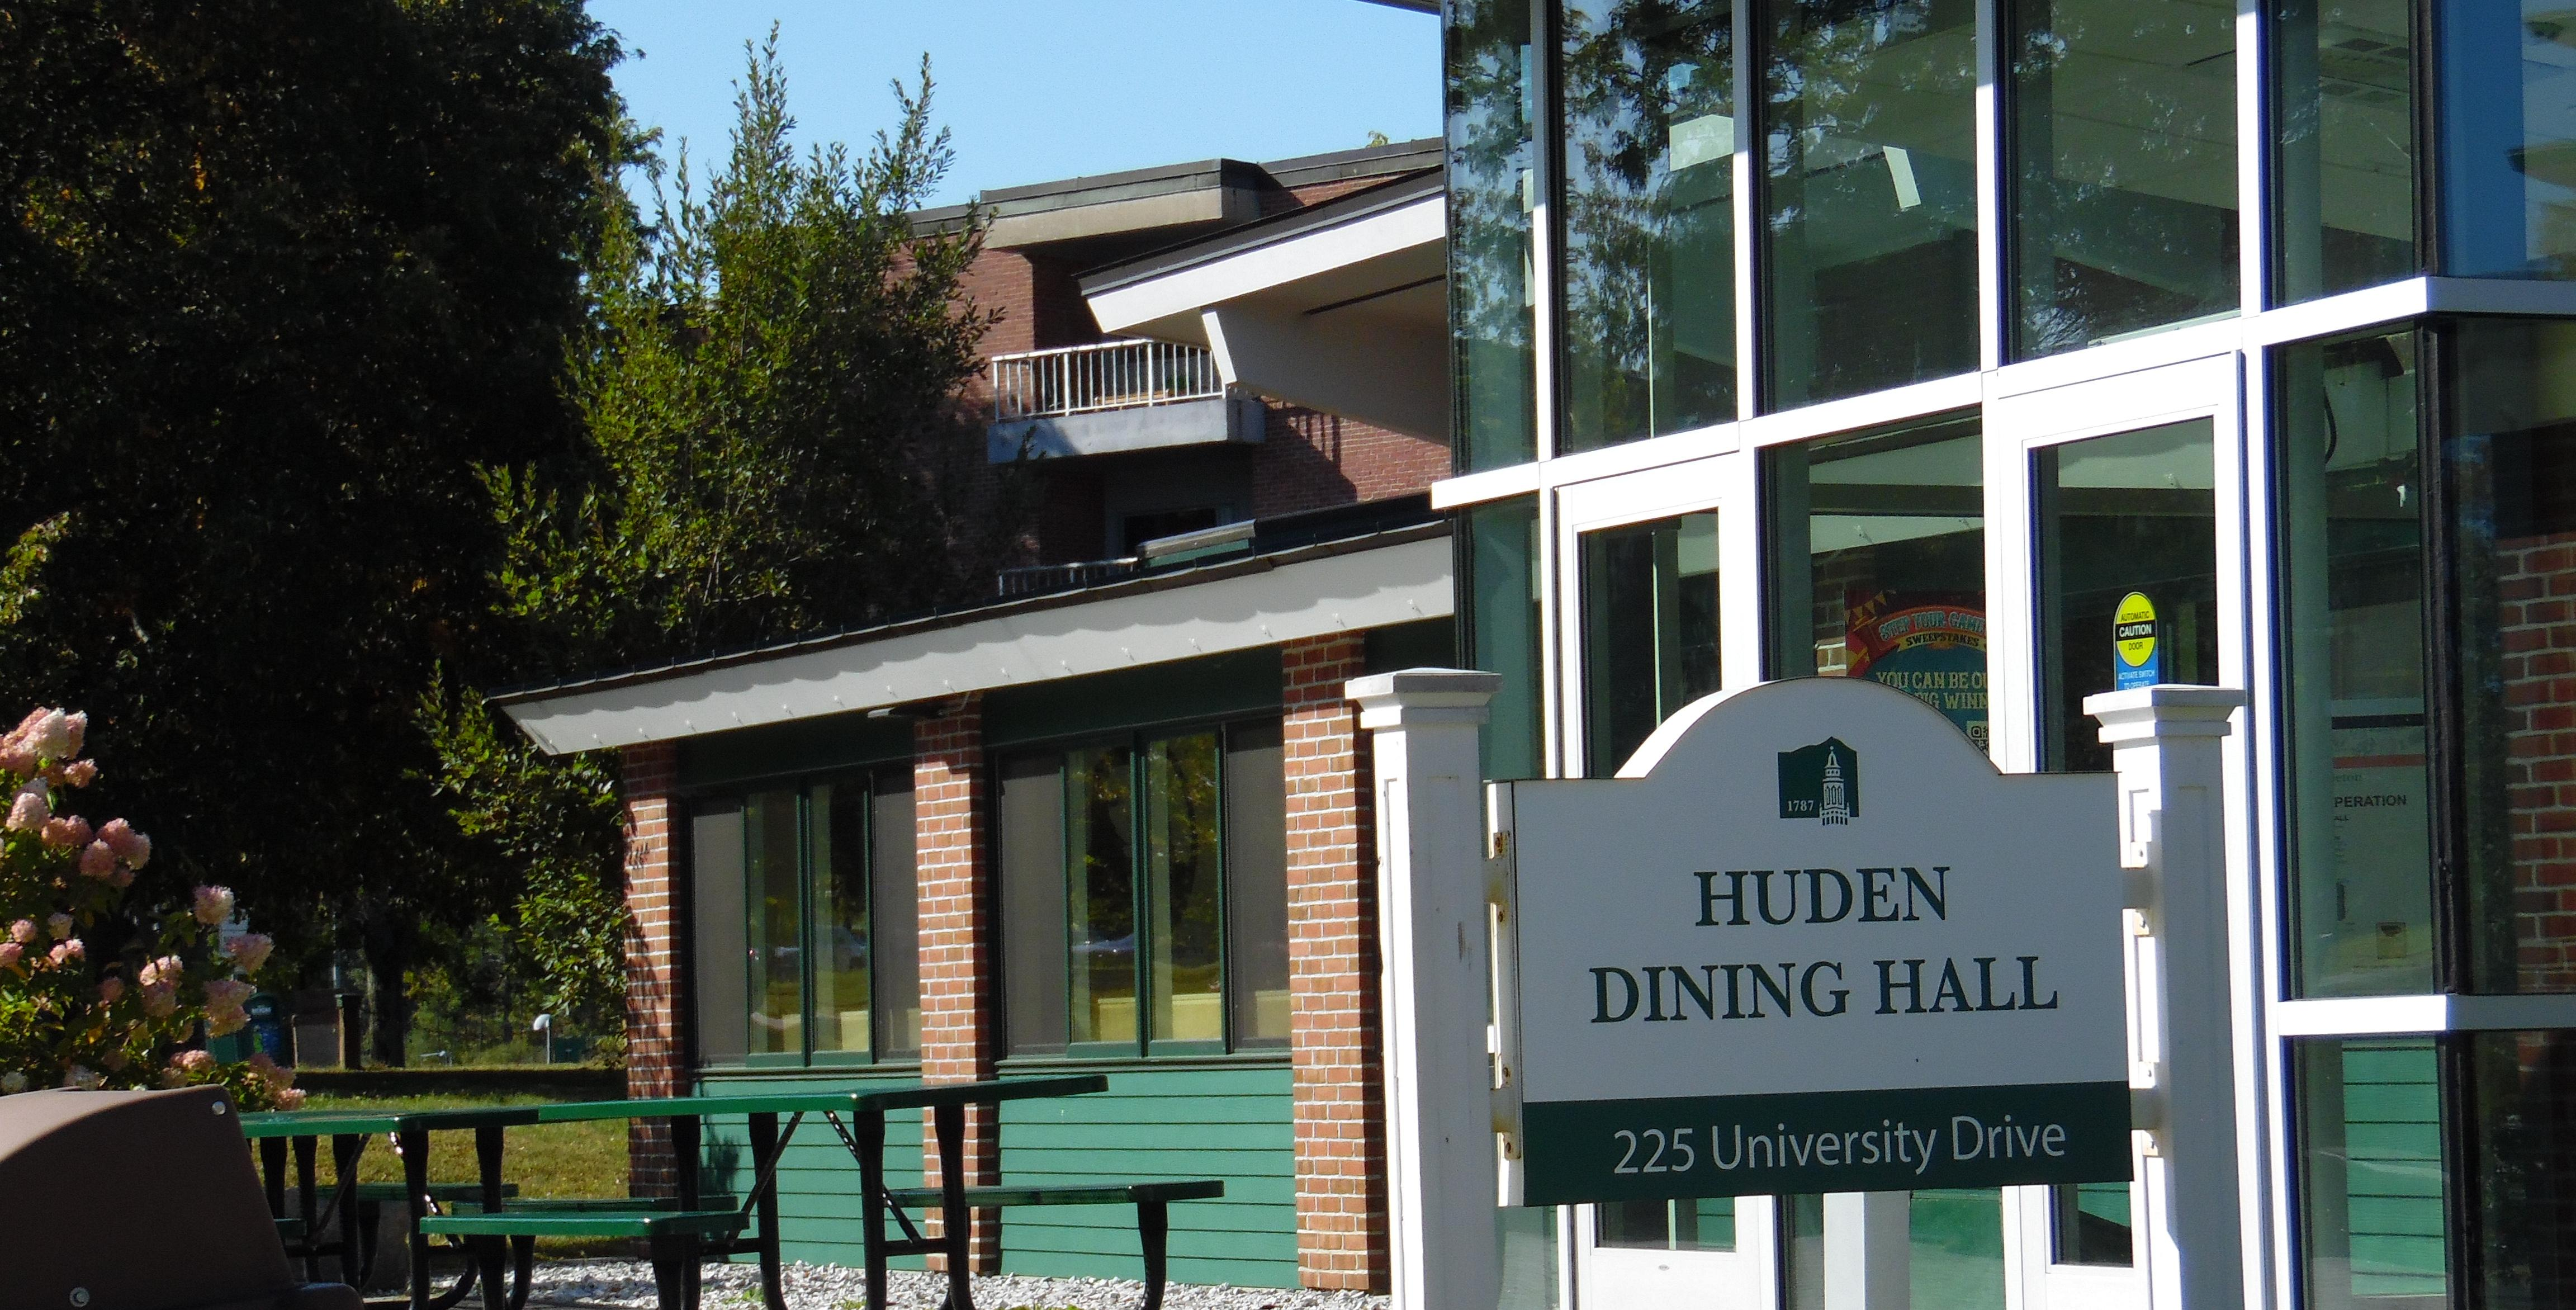 Outside of Huden Dining Hall